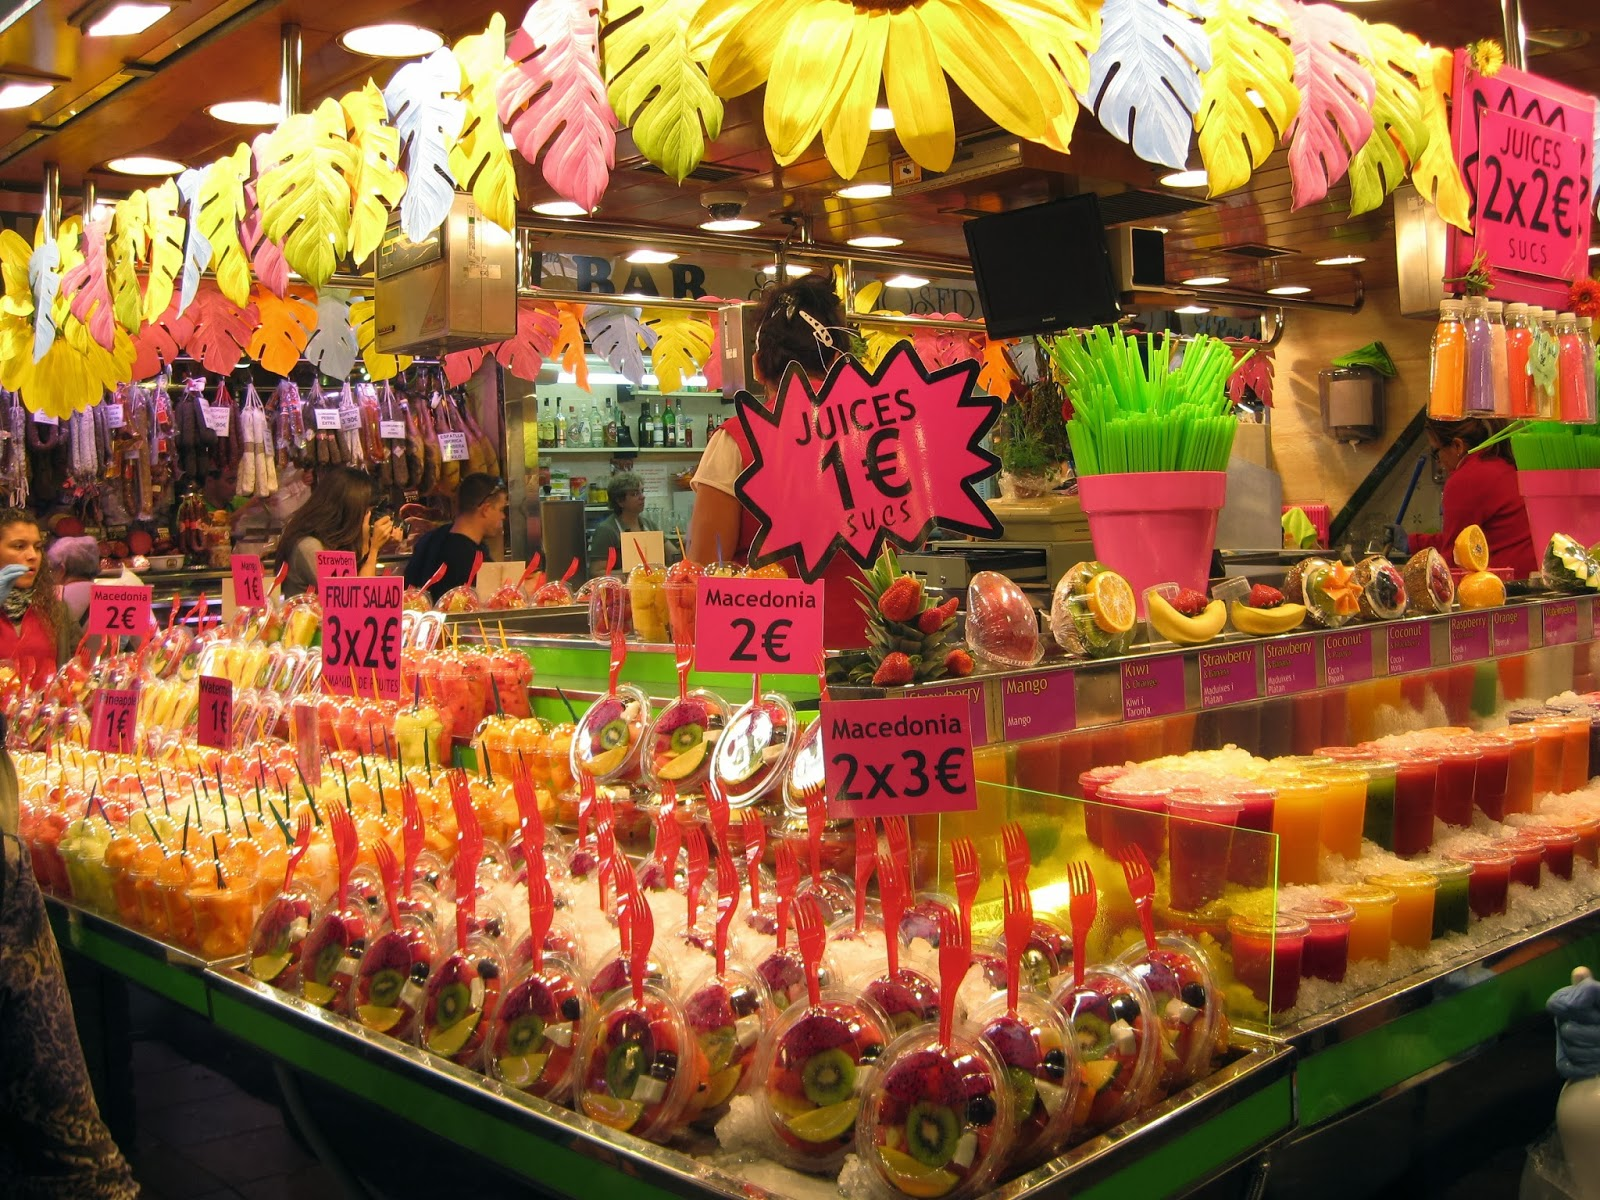 Barcelona - one of the many fruit stands in La Boqueria market